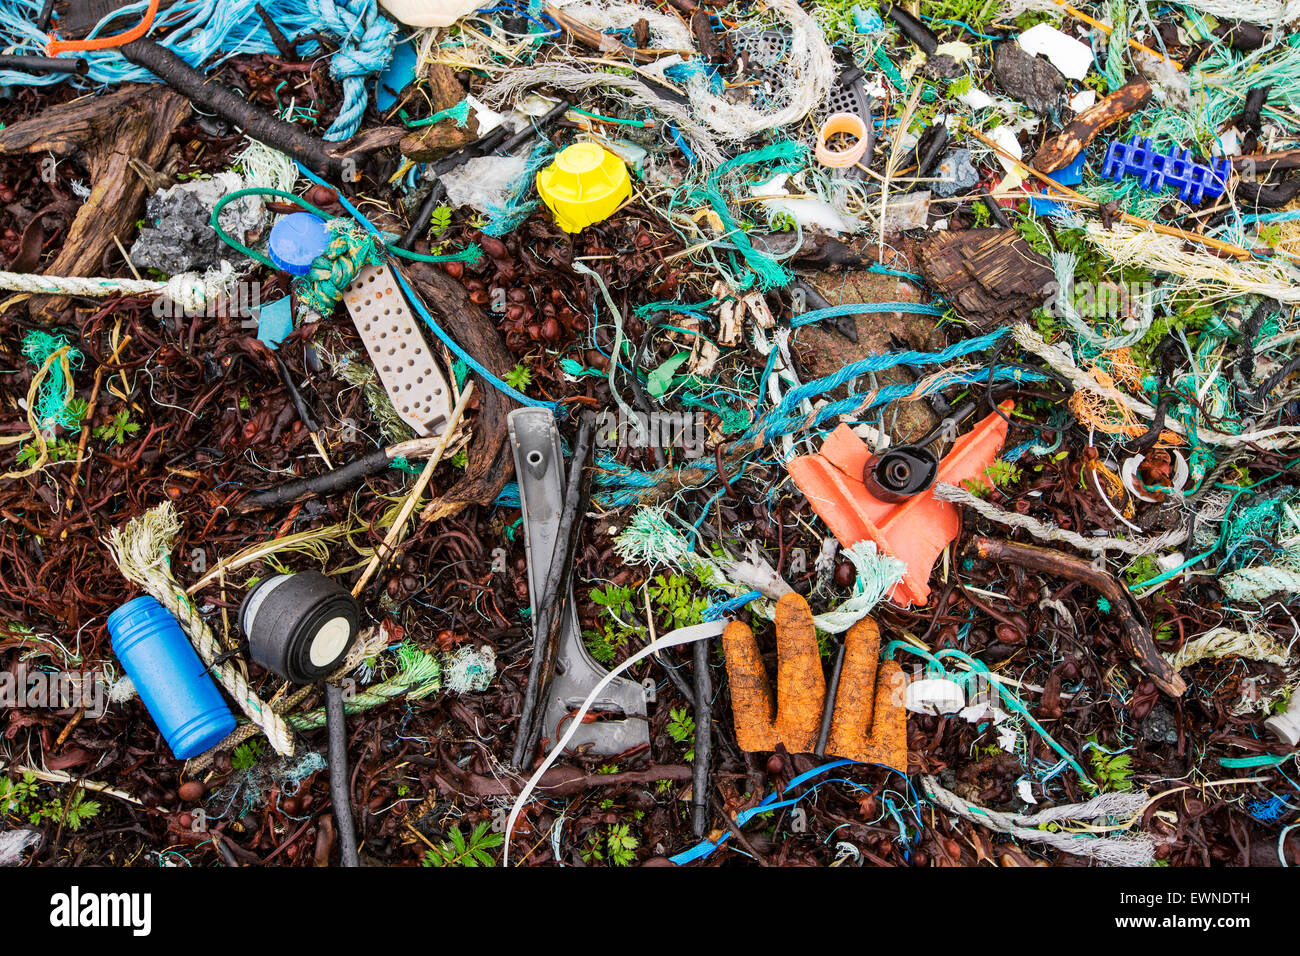 Plastic rubbish washed ashore on Rubha Coigeach in Assynt, Scotland, UK. - Stock Image